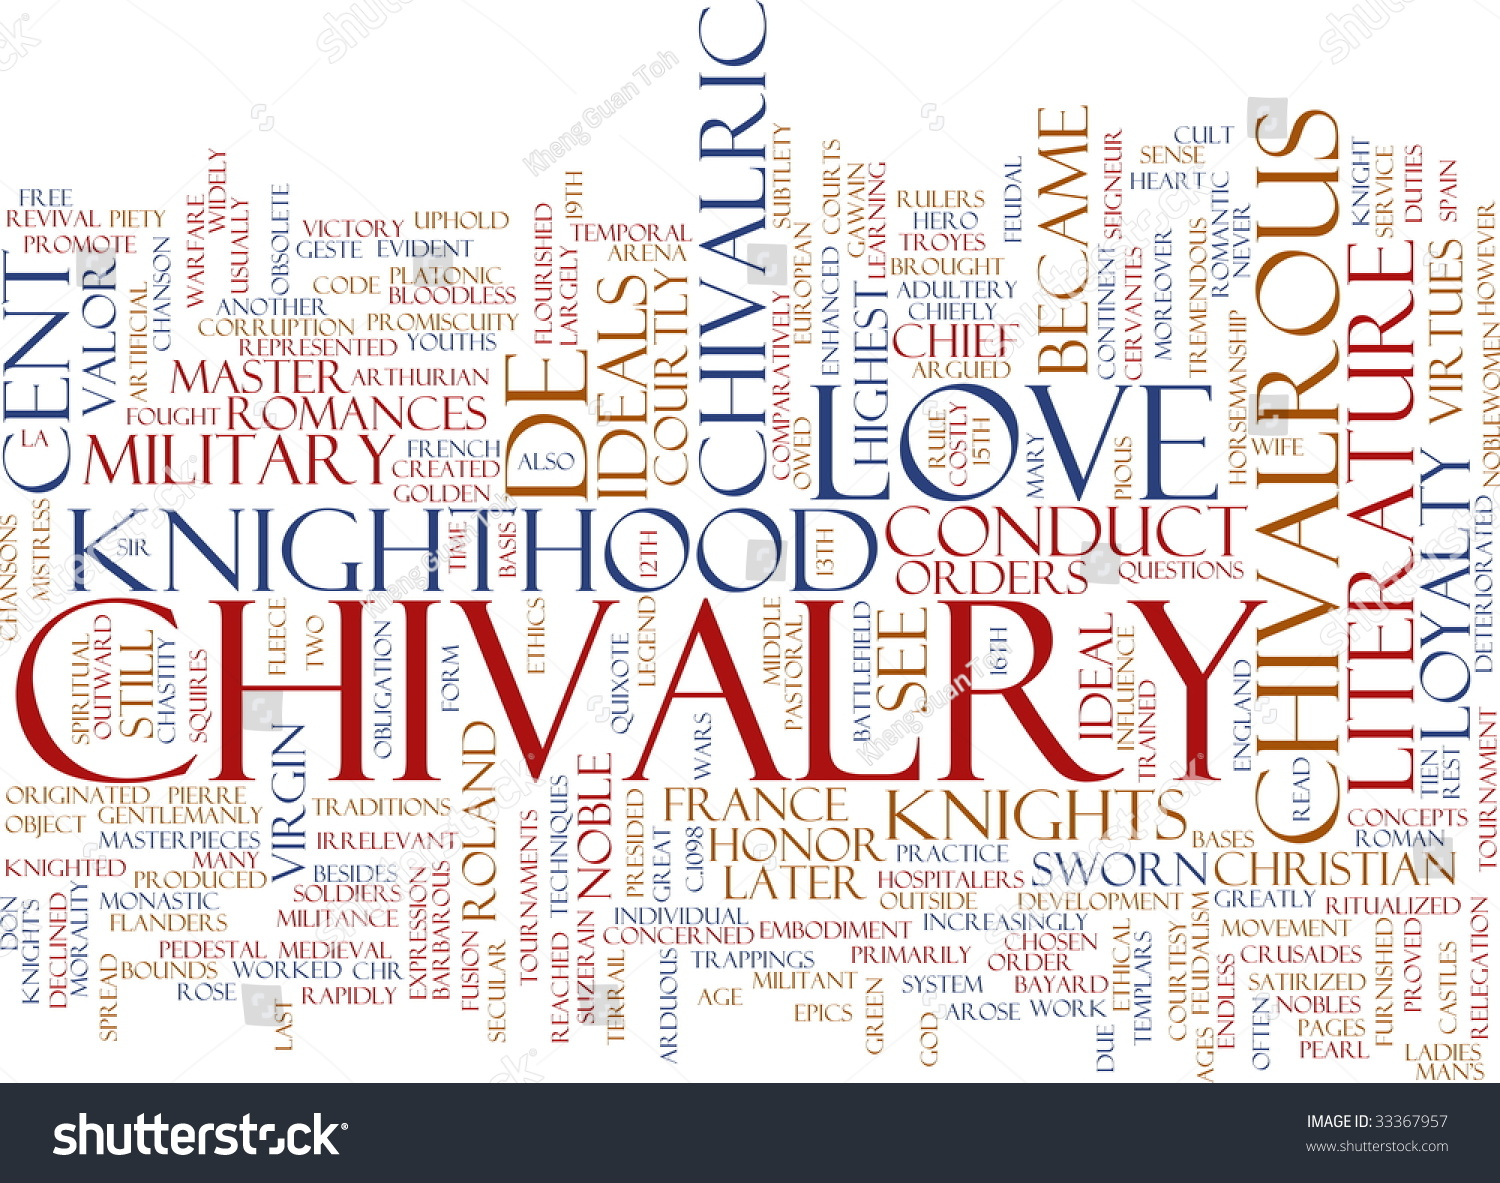 concept of chivalry